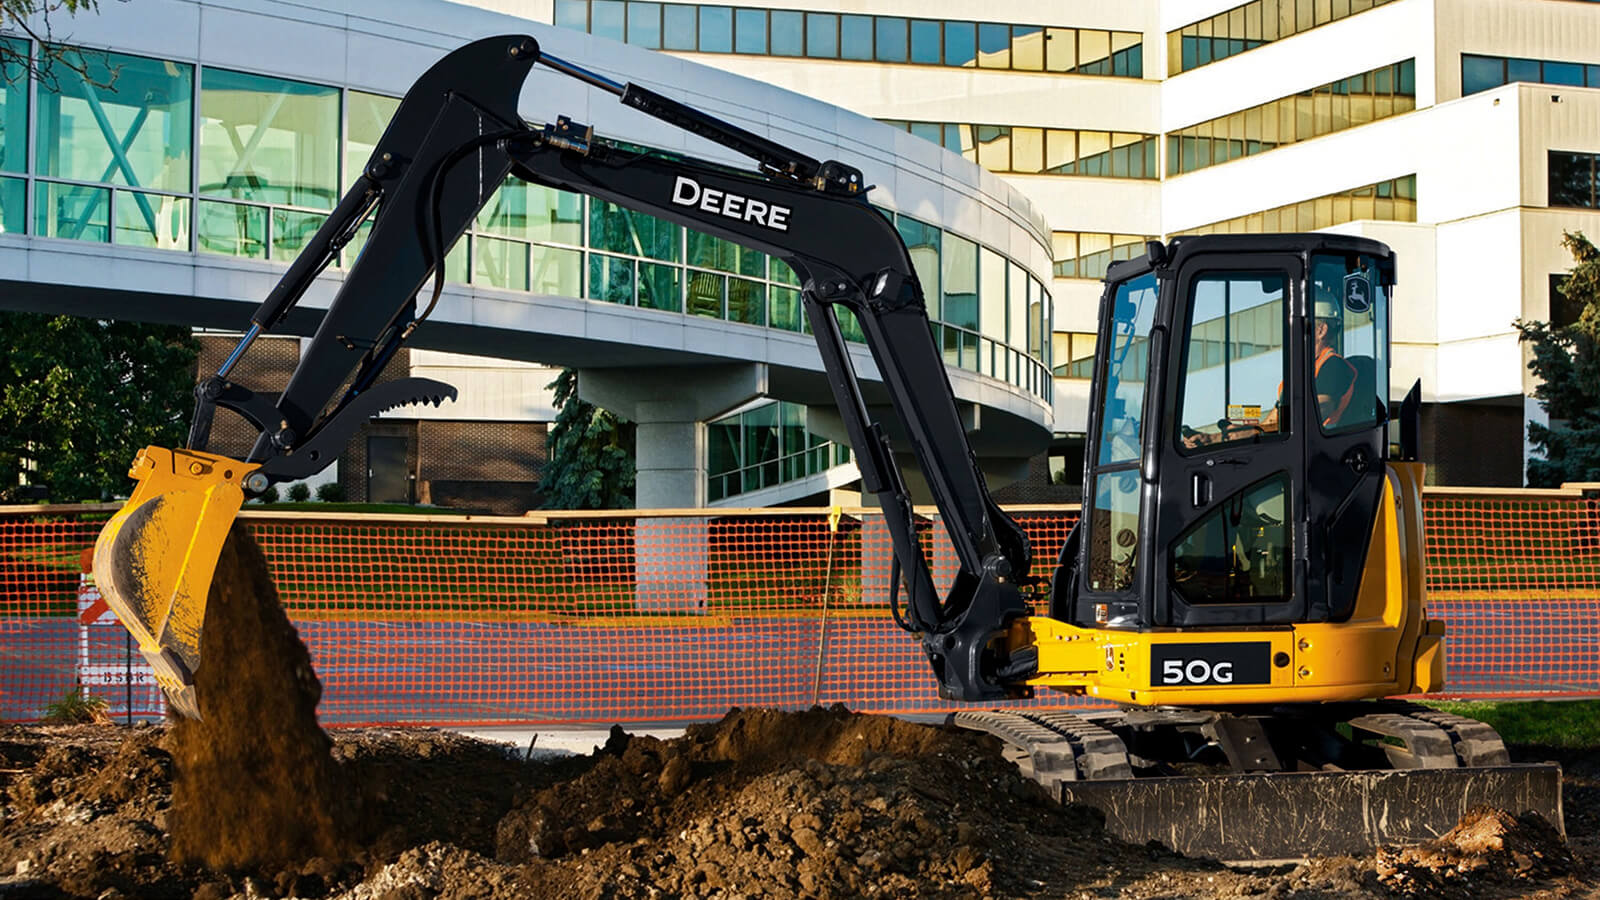 excavator digging dirt next to concrete walkway with large office building in background